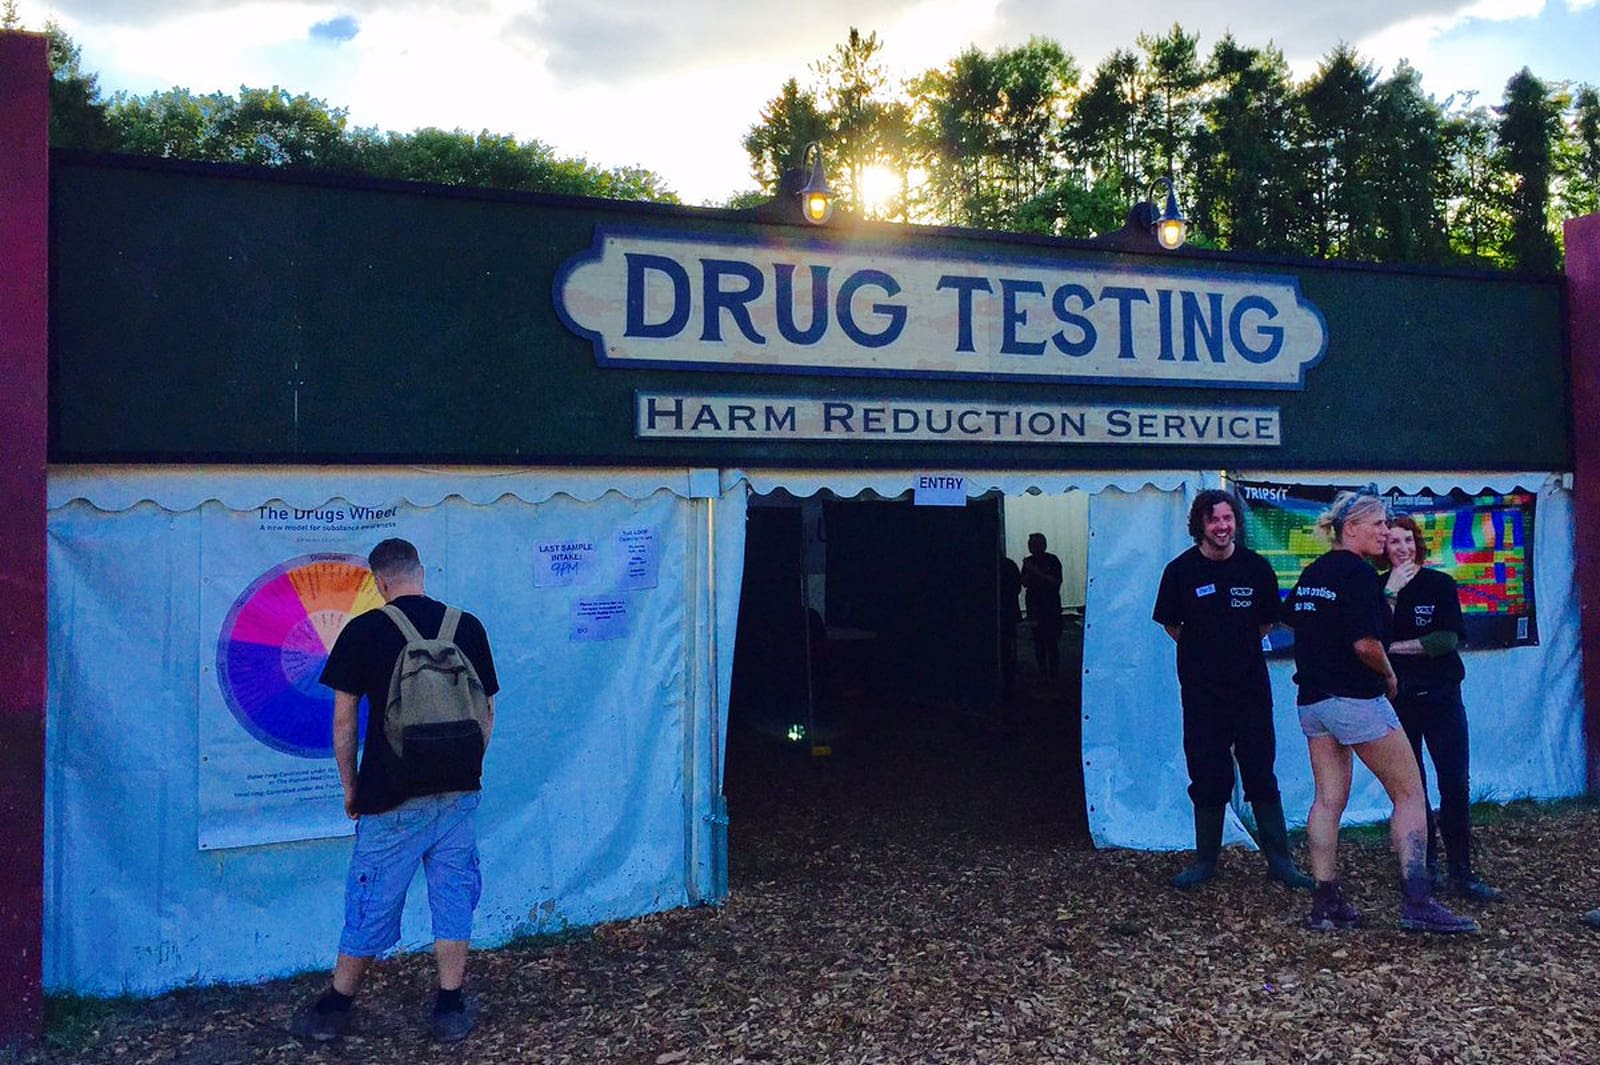 Drug Testing carried out by the charity The Loop at festivals.